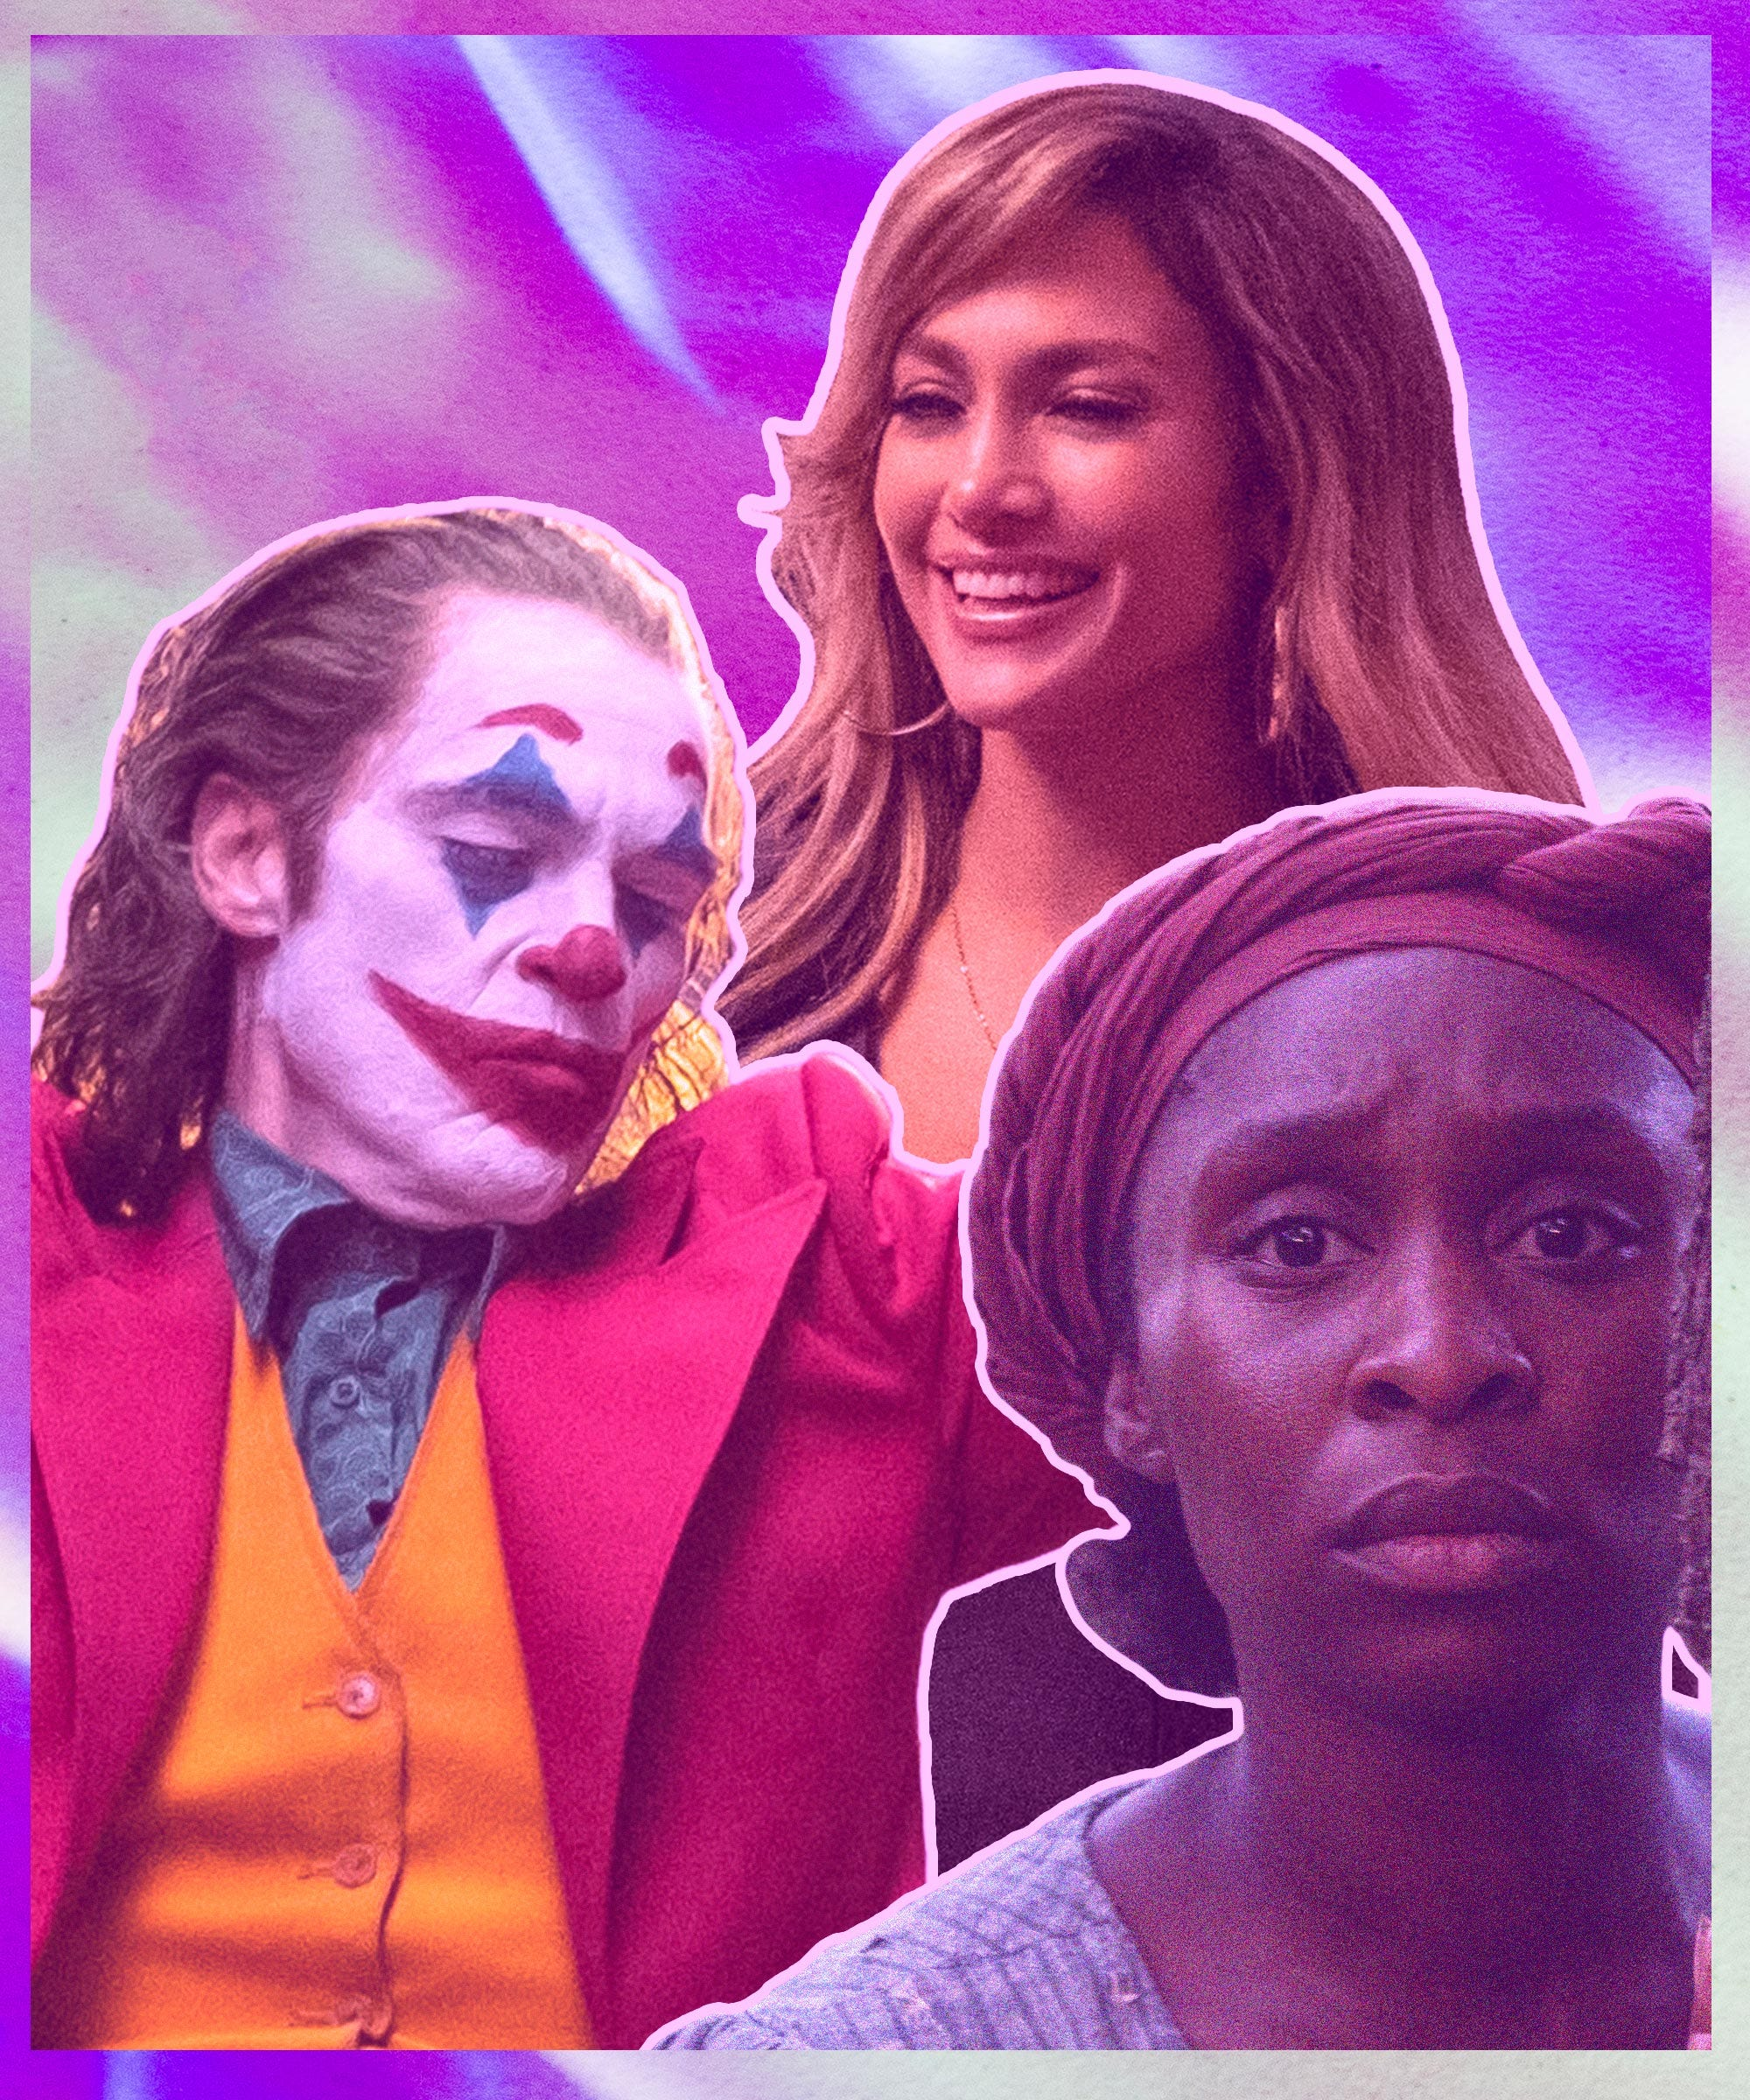 From Hustlers To Harriet, Here Are The Movies To Look Out For In Fall 2019